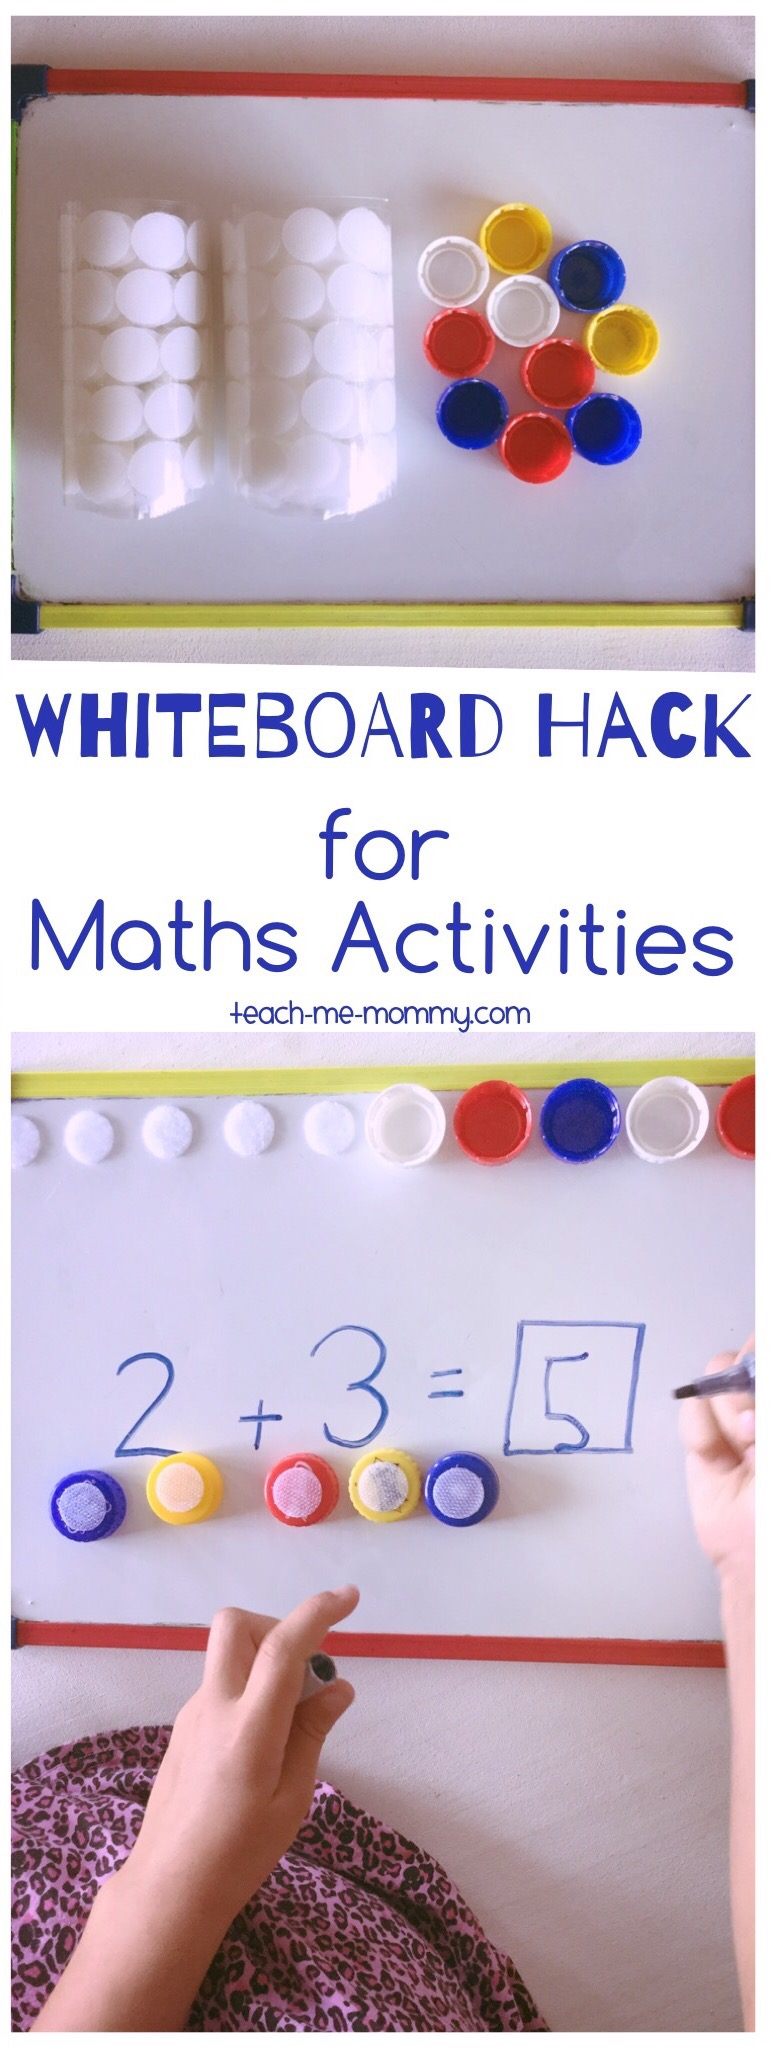 Whiteboard Hack for Maths Activities